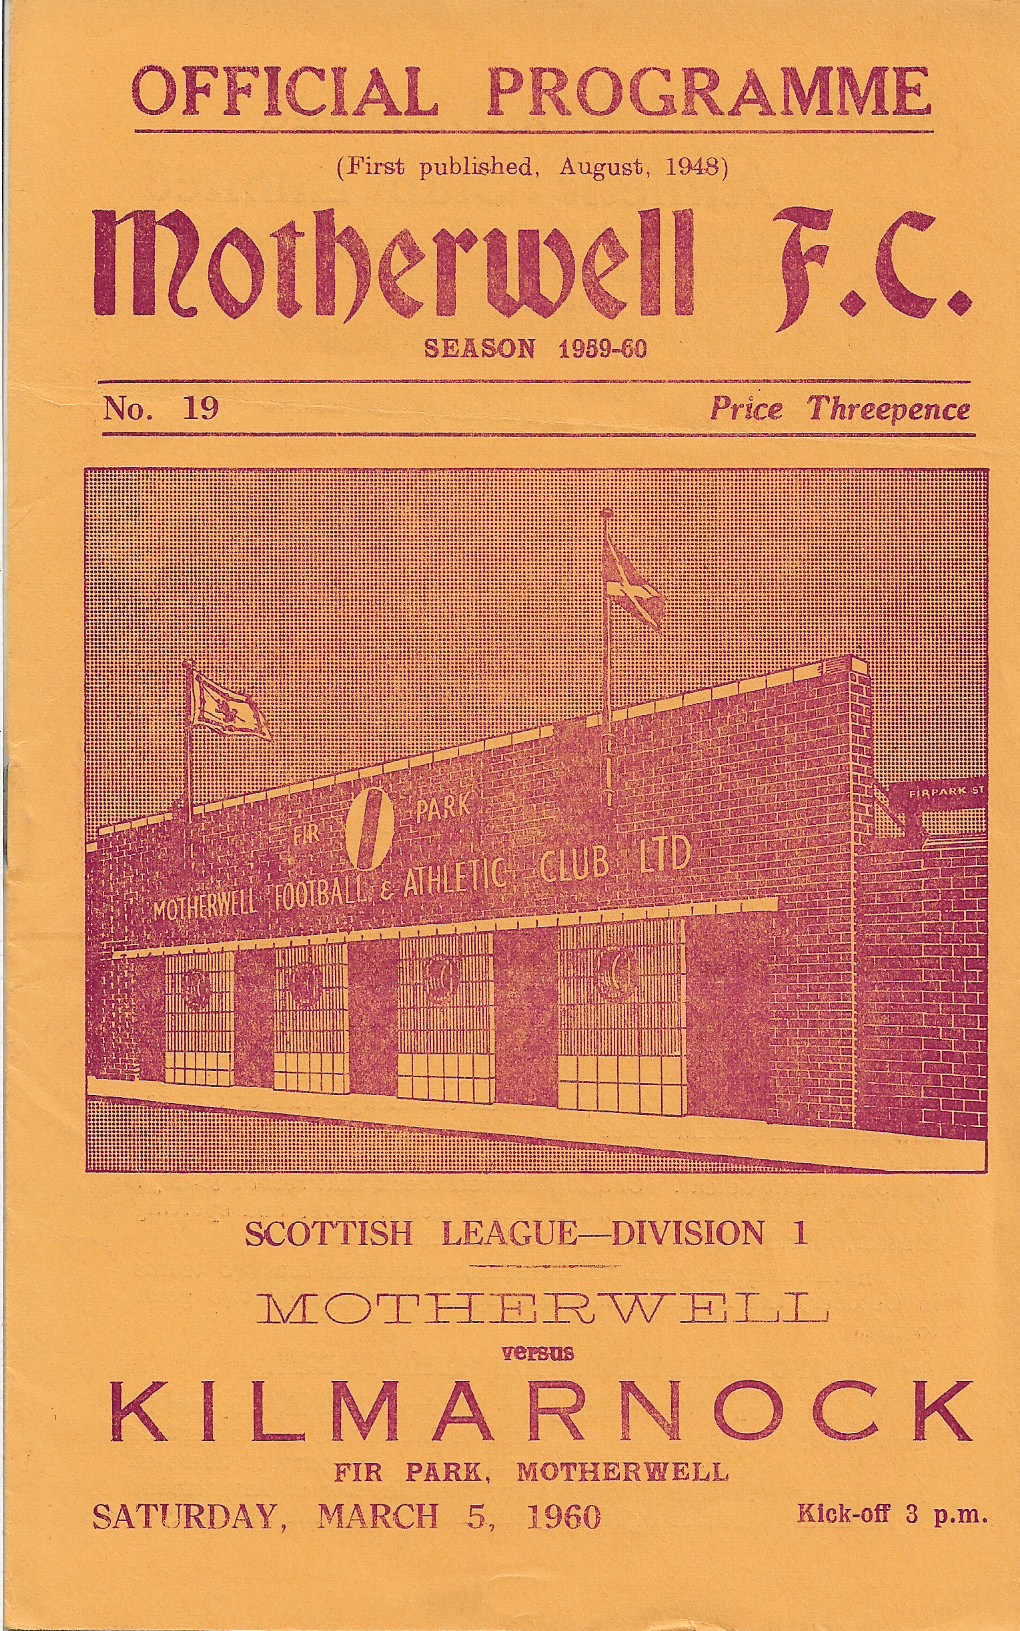 Kilmarnock Programme Cover - March 5th 1960